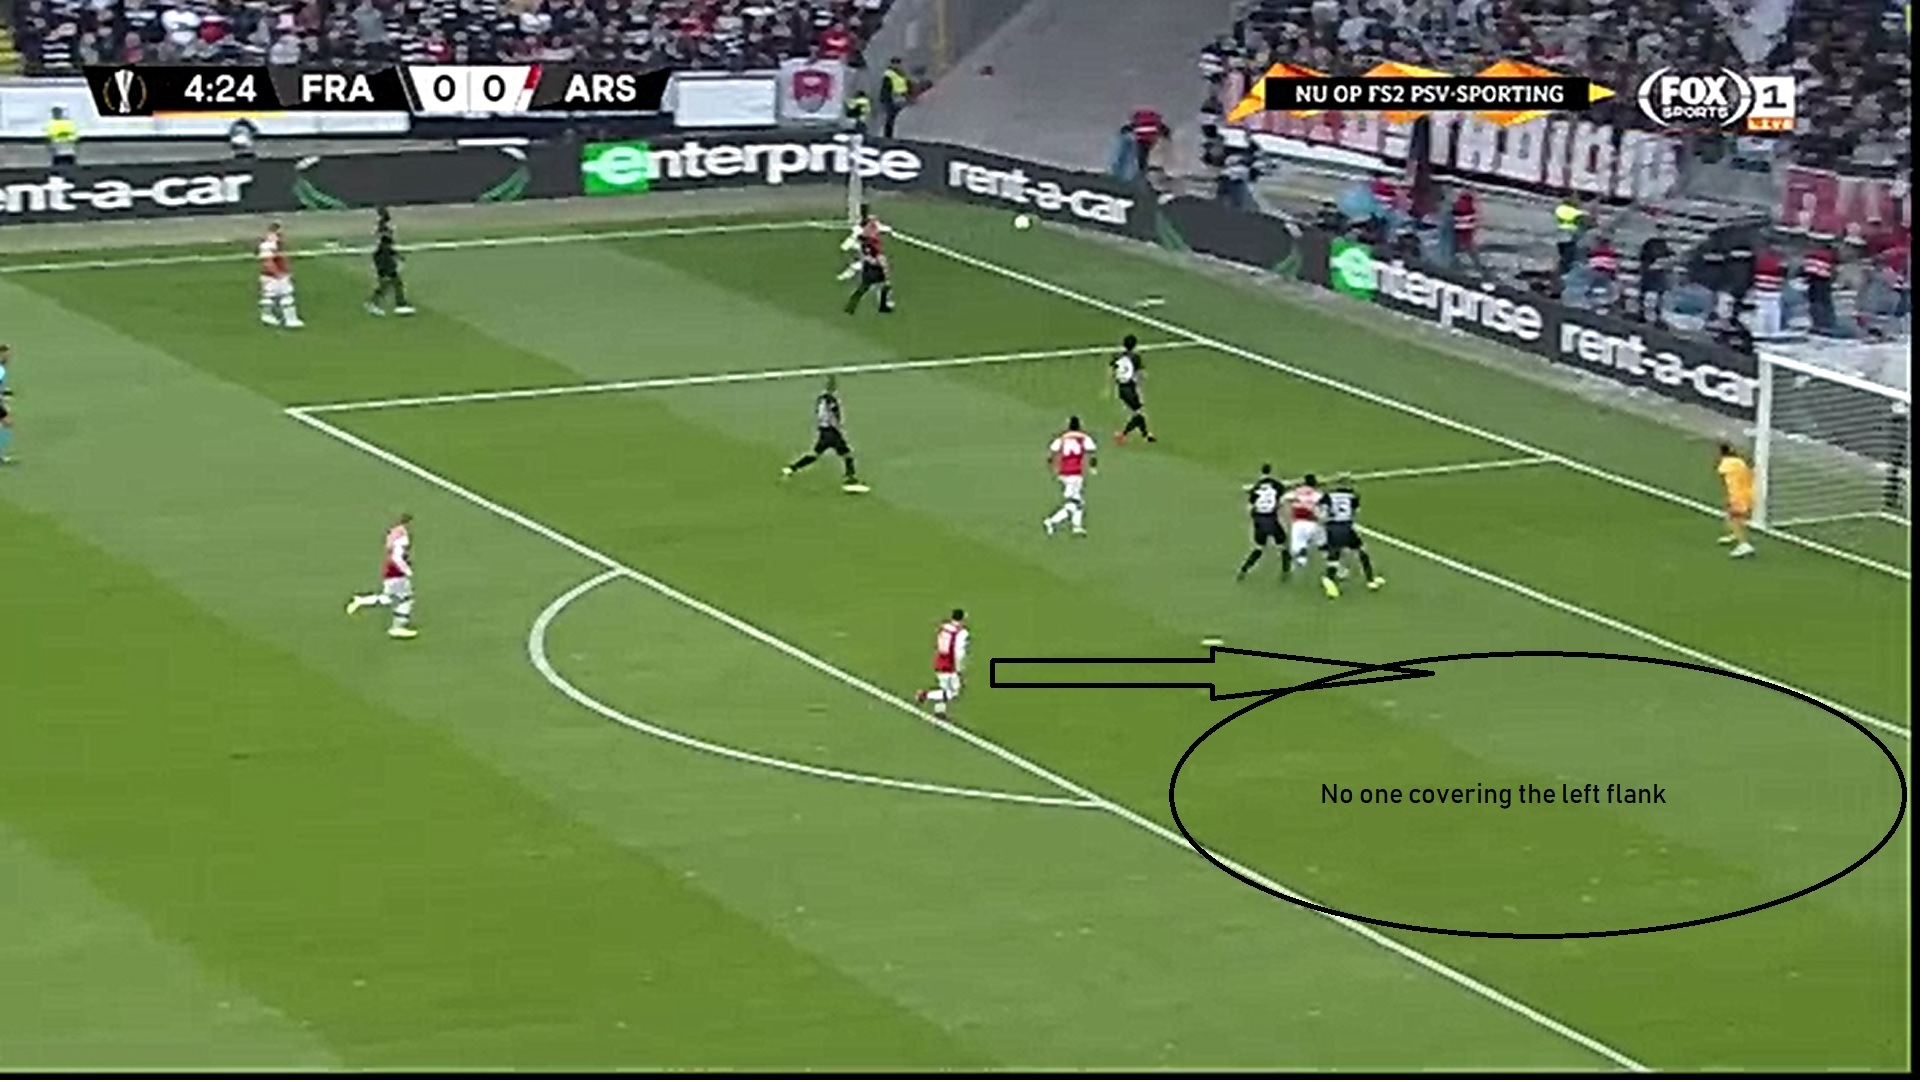 UEFA Europa League 2019/20: Eintracht Frankfurt vs Arsenal – tactical analysis tactics